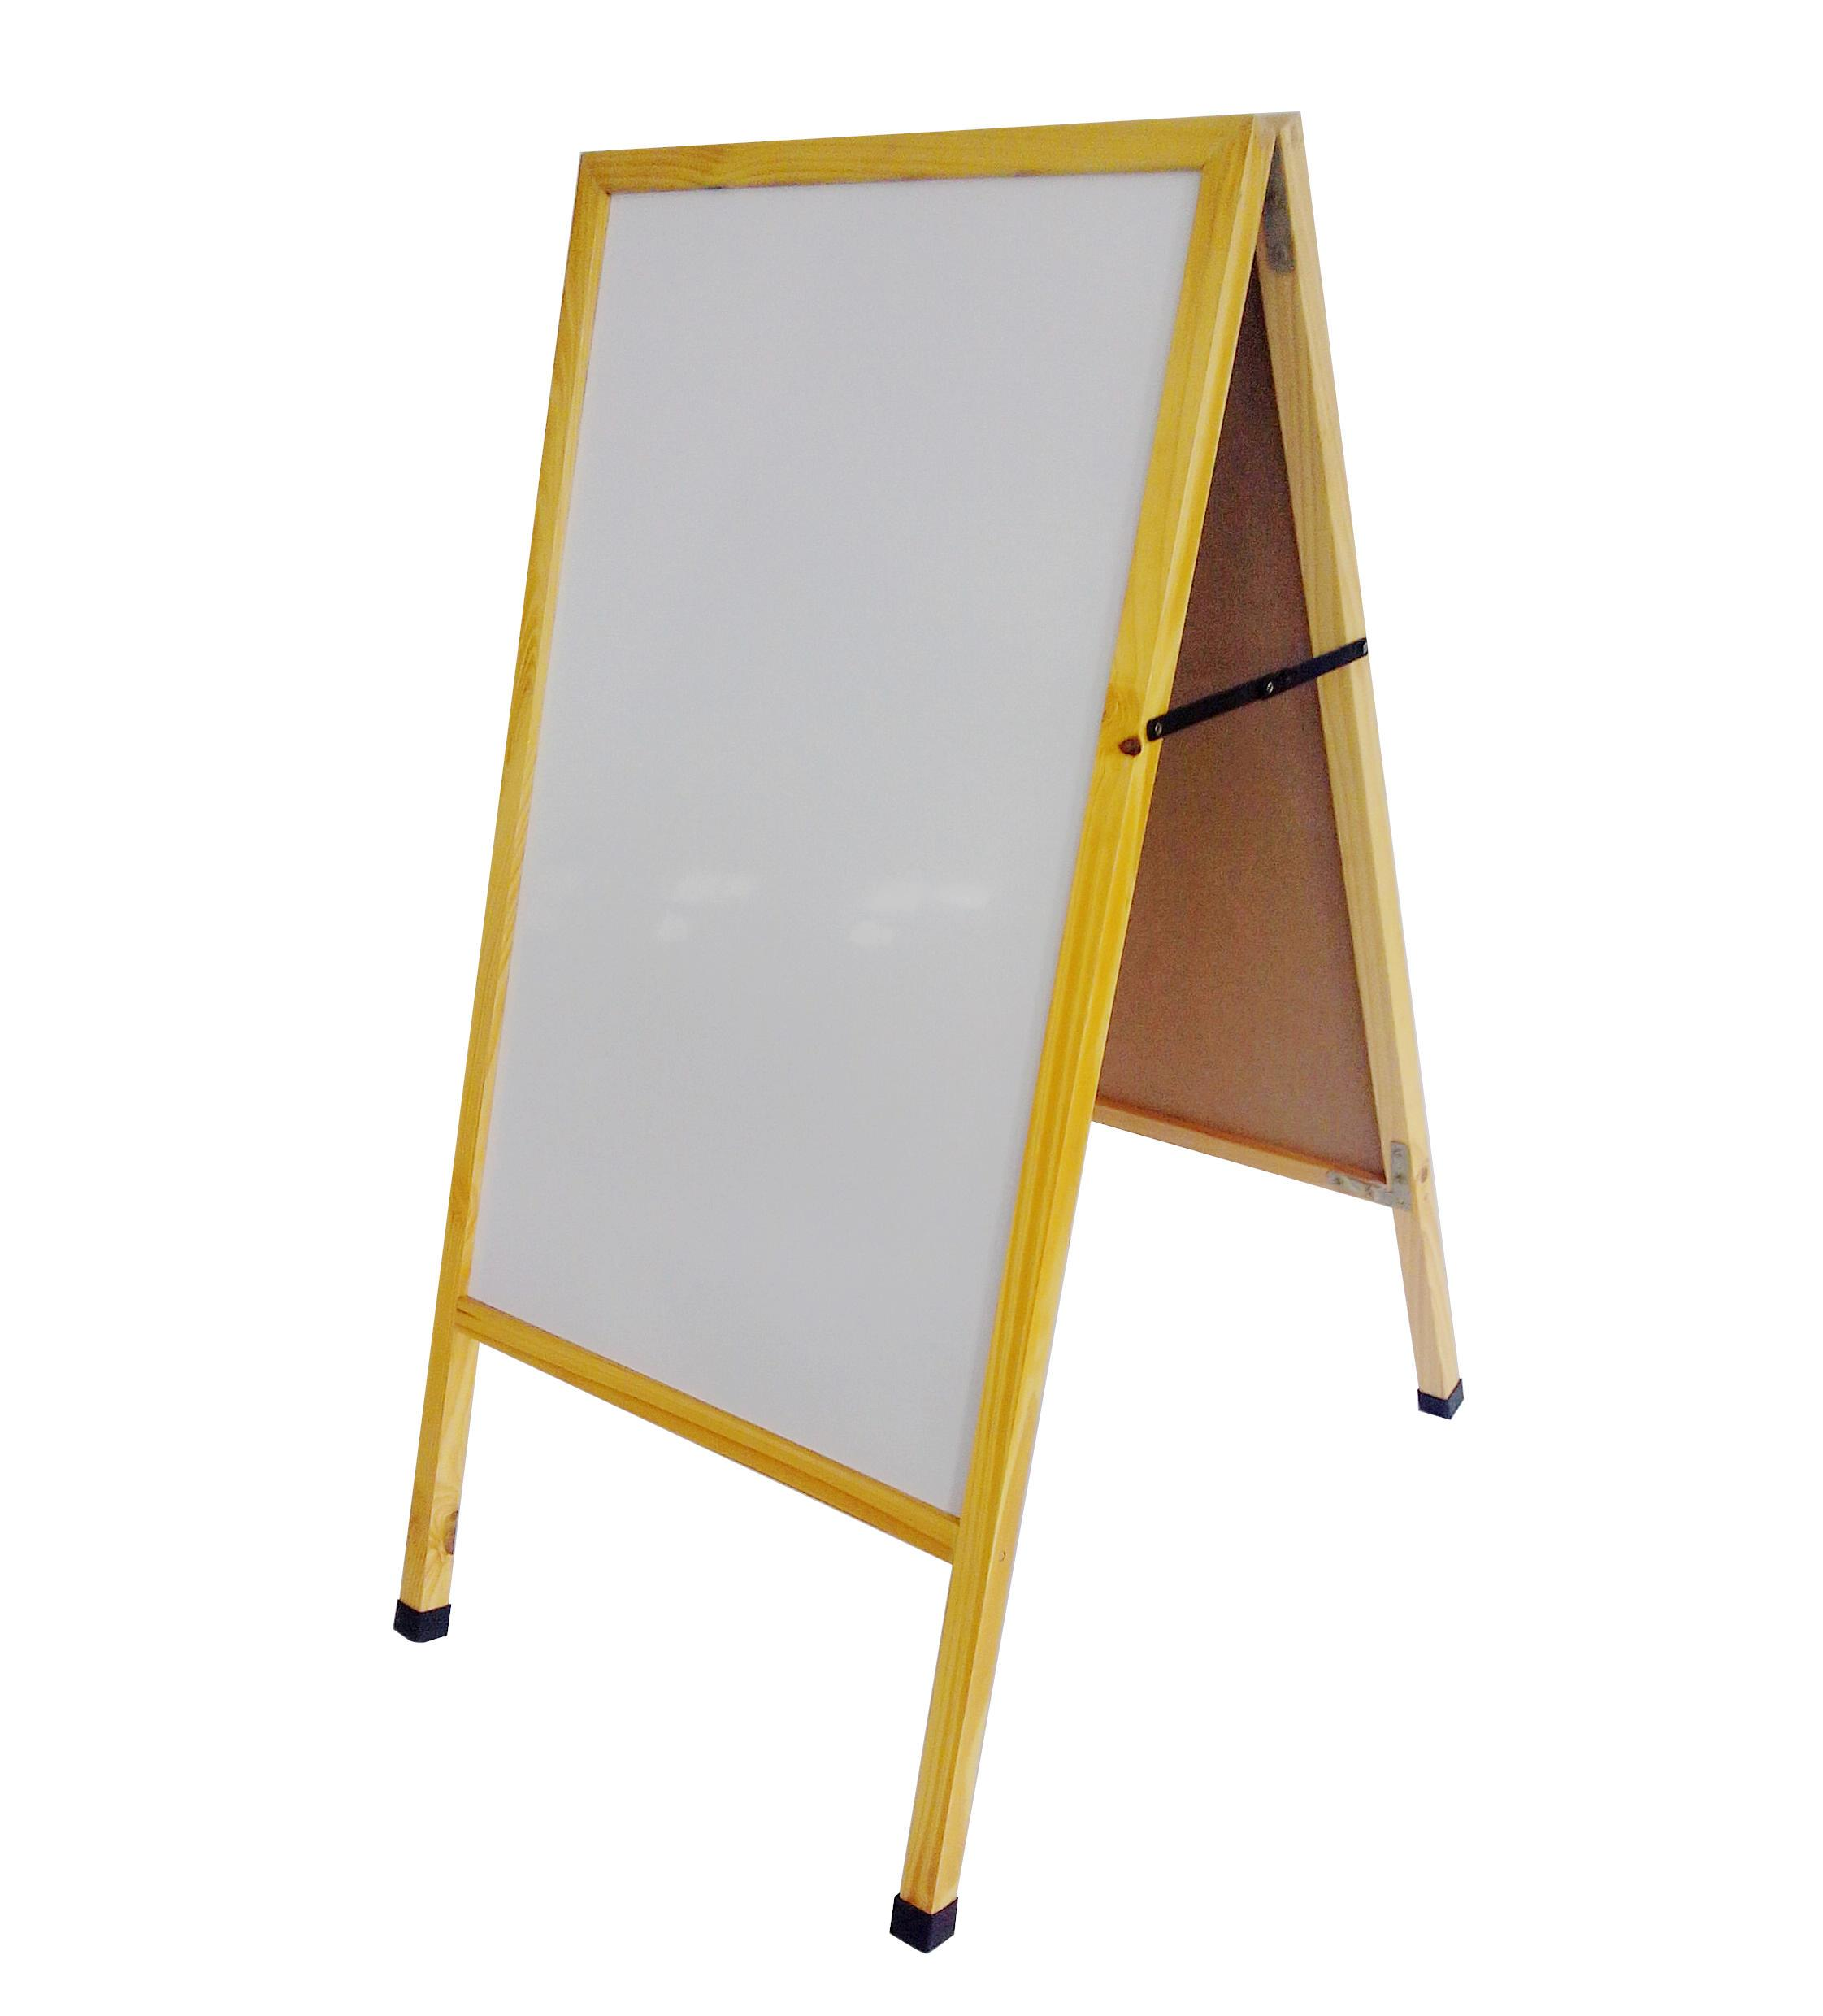 a frame sidewalk sign menu board white dry erase board pavement promotion sign